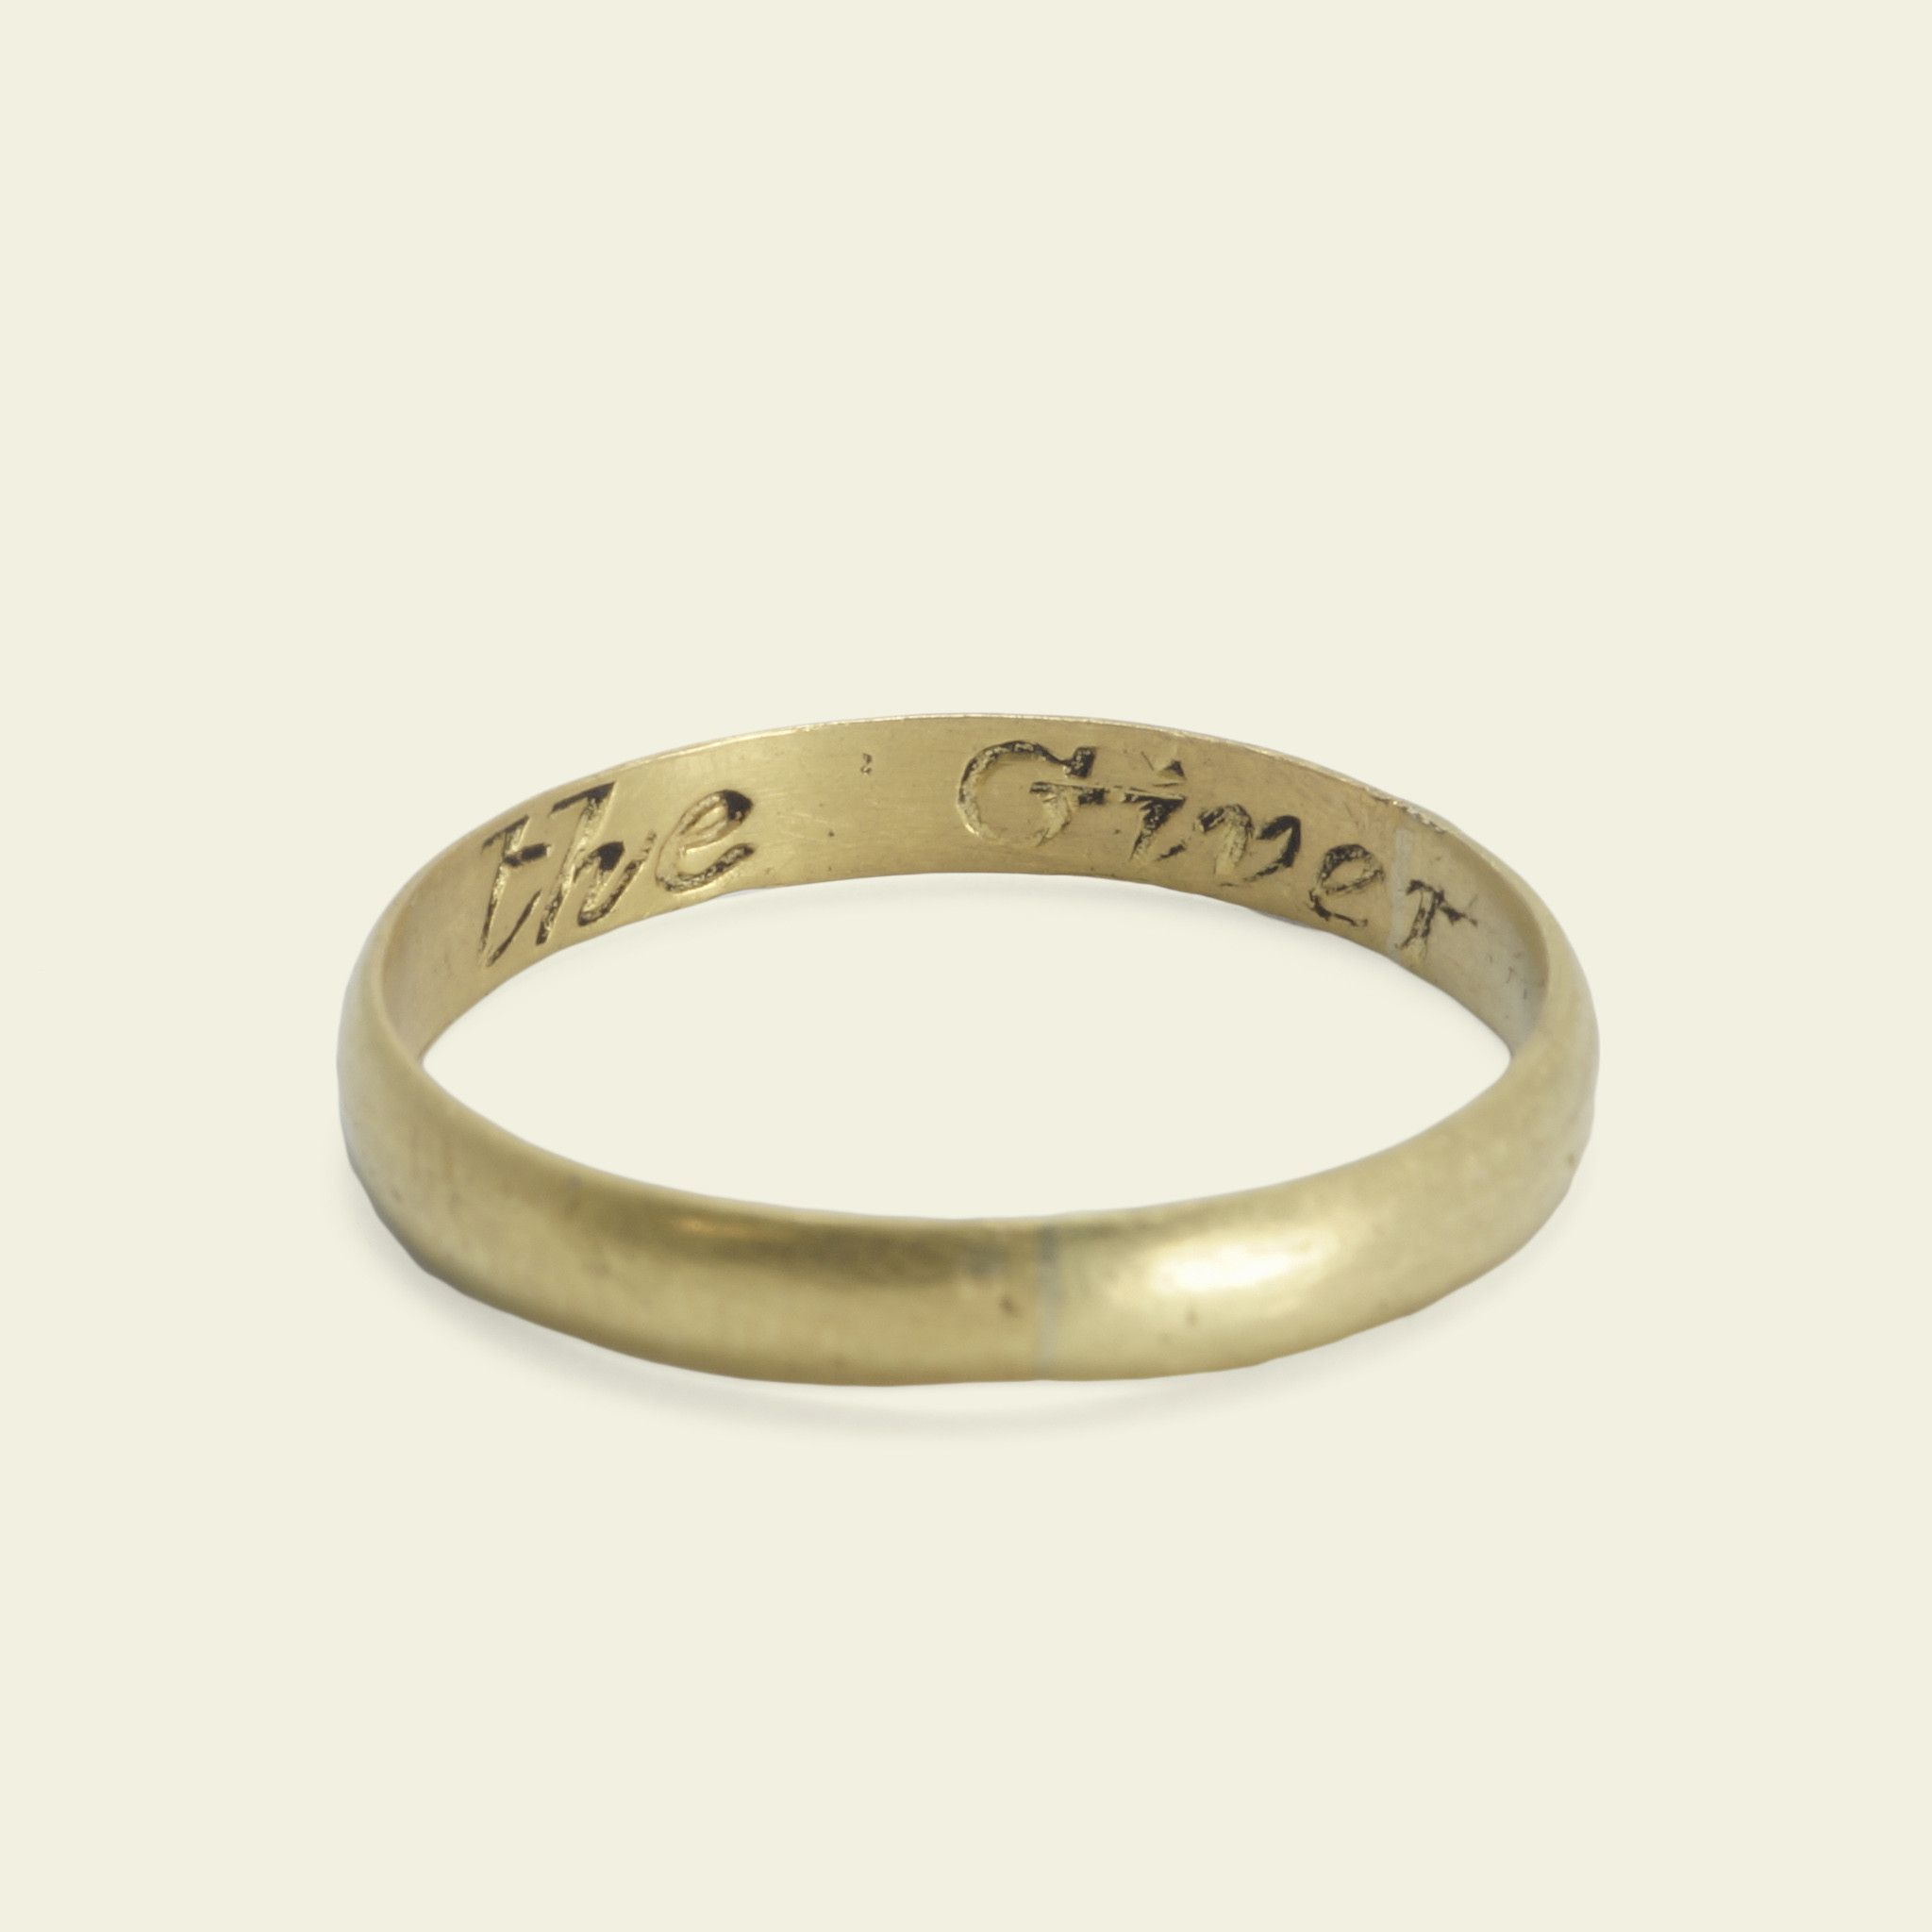 century wedding engagement the dublin nouveau rings ages art of weldons through